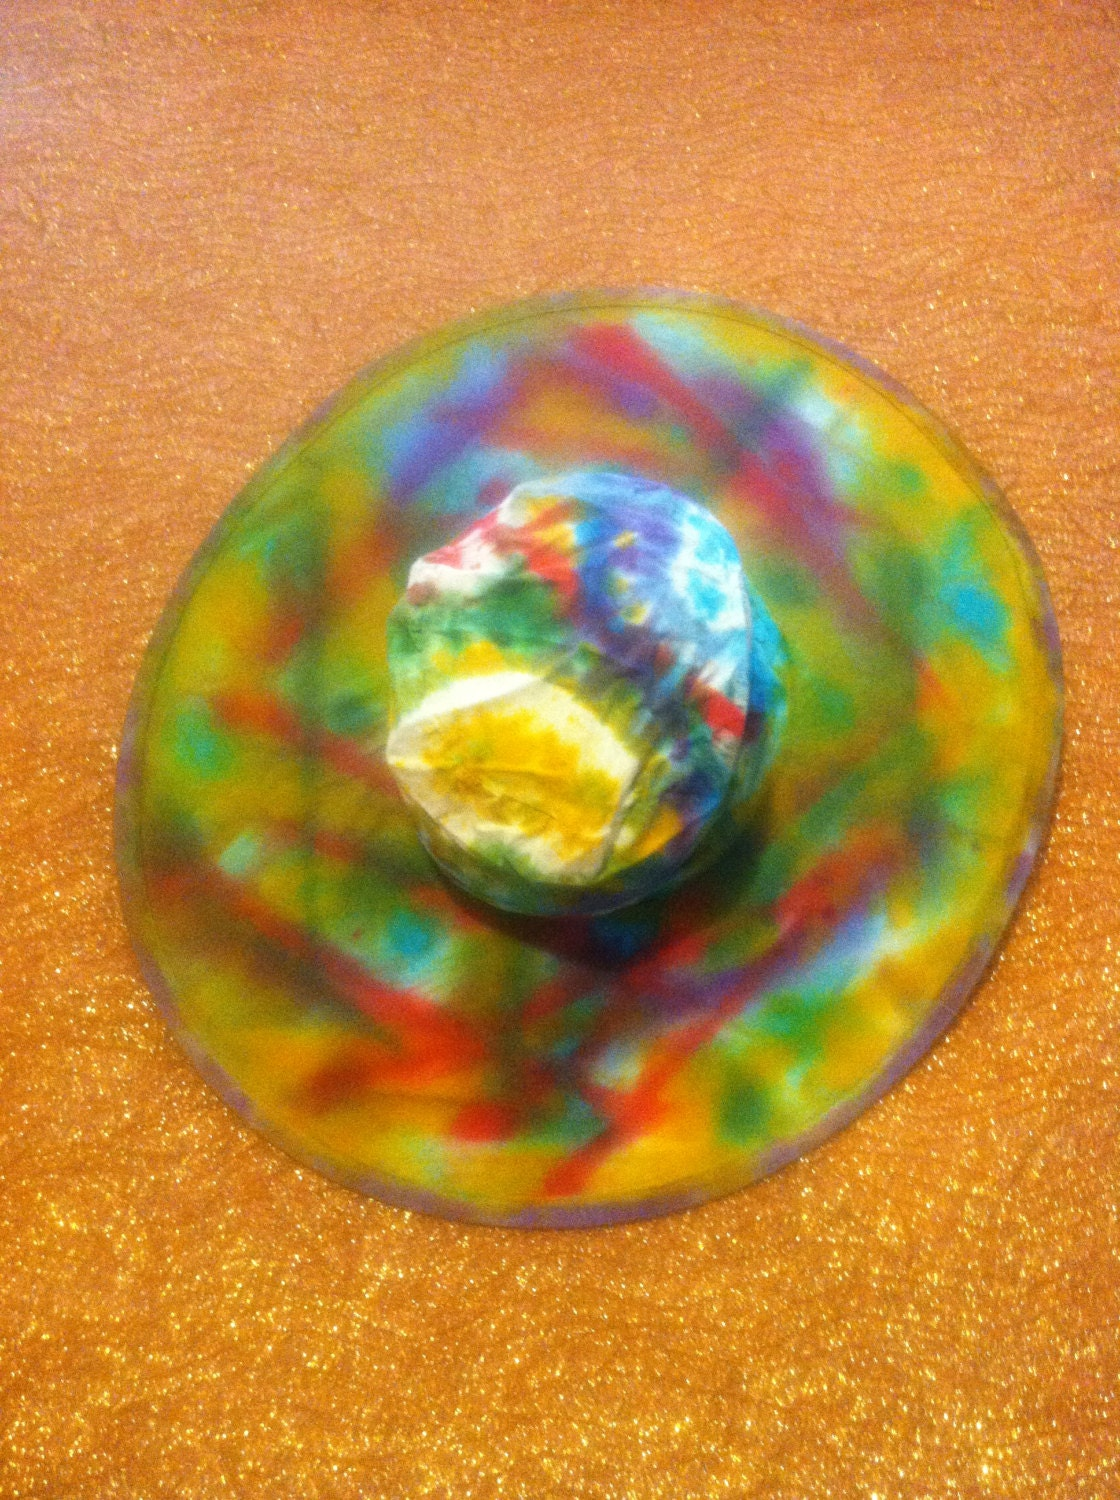 custom tie dye or painted sun hat folds into matching